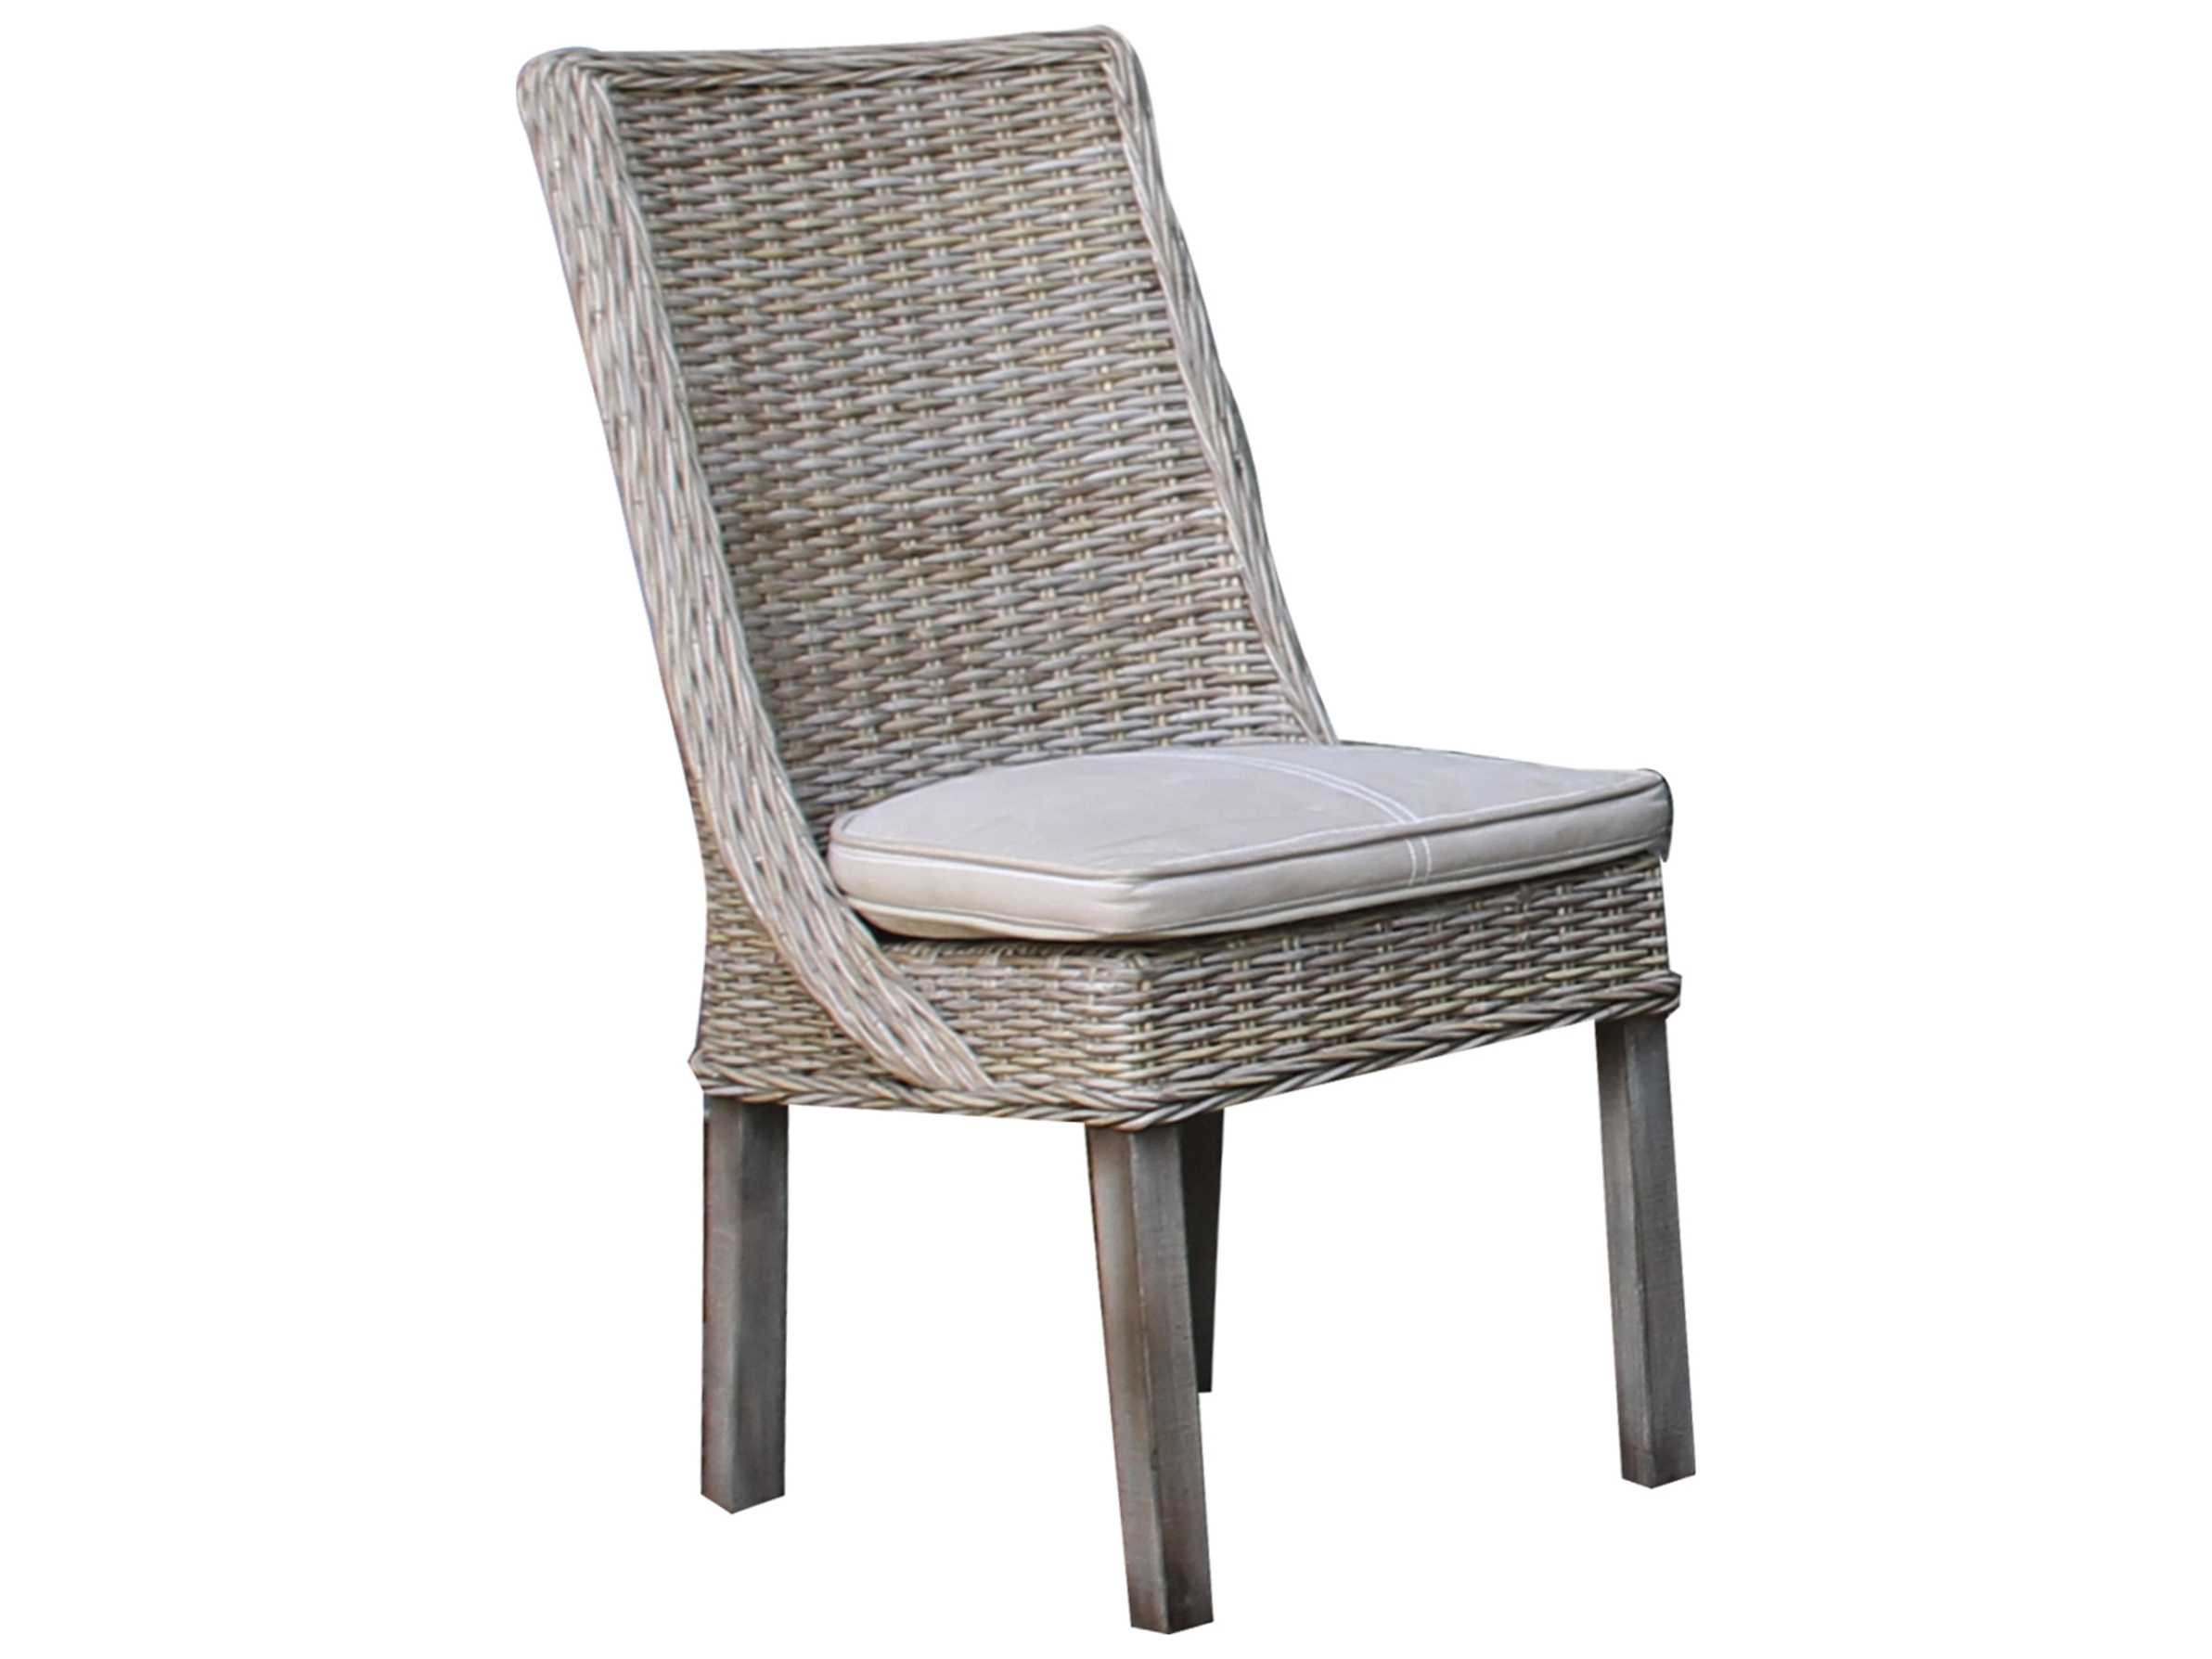 Wicker Side Chair Panama Jack Exuma Wicker Dining Side Chair Pjs 3001 Kbu Sc